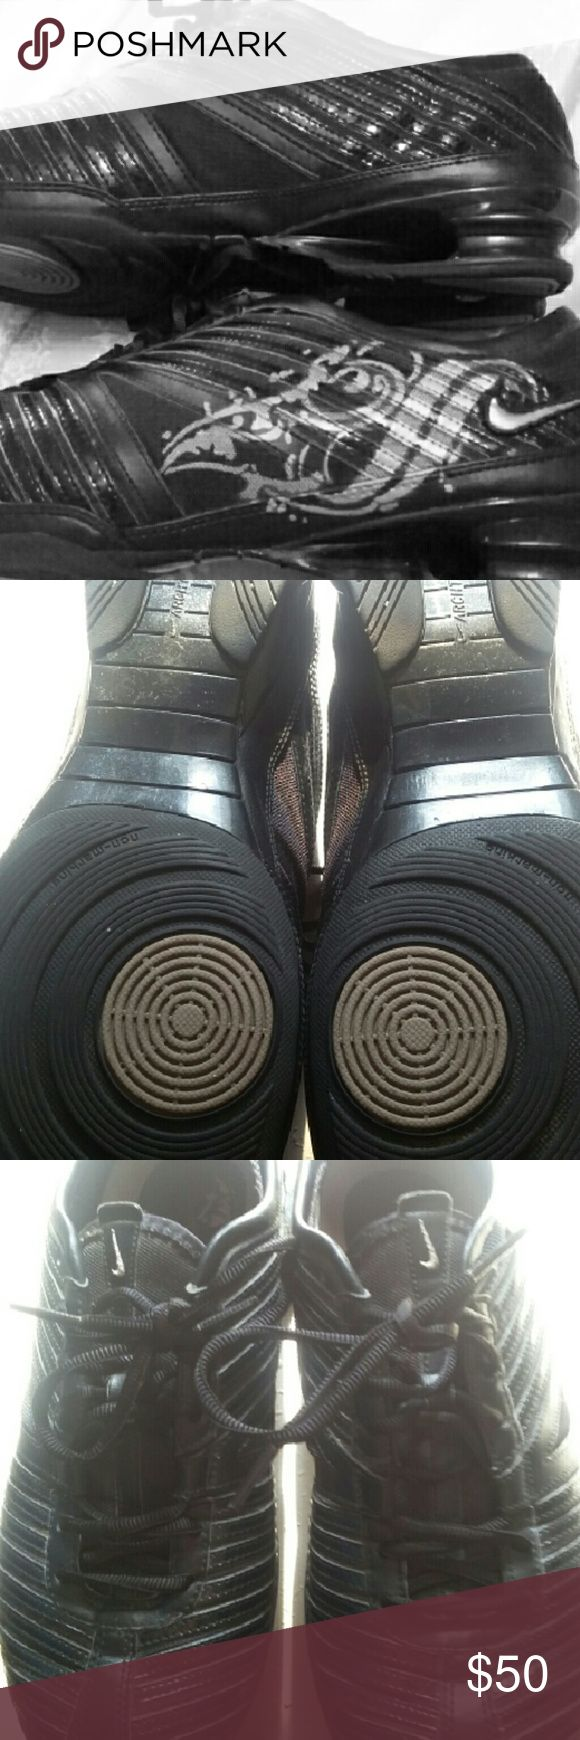 Black and Silver Nike Dress Shoes Great condition. Non-marking soles with Arch tech for great support. Nike Shoes Sneakers